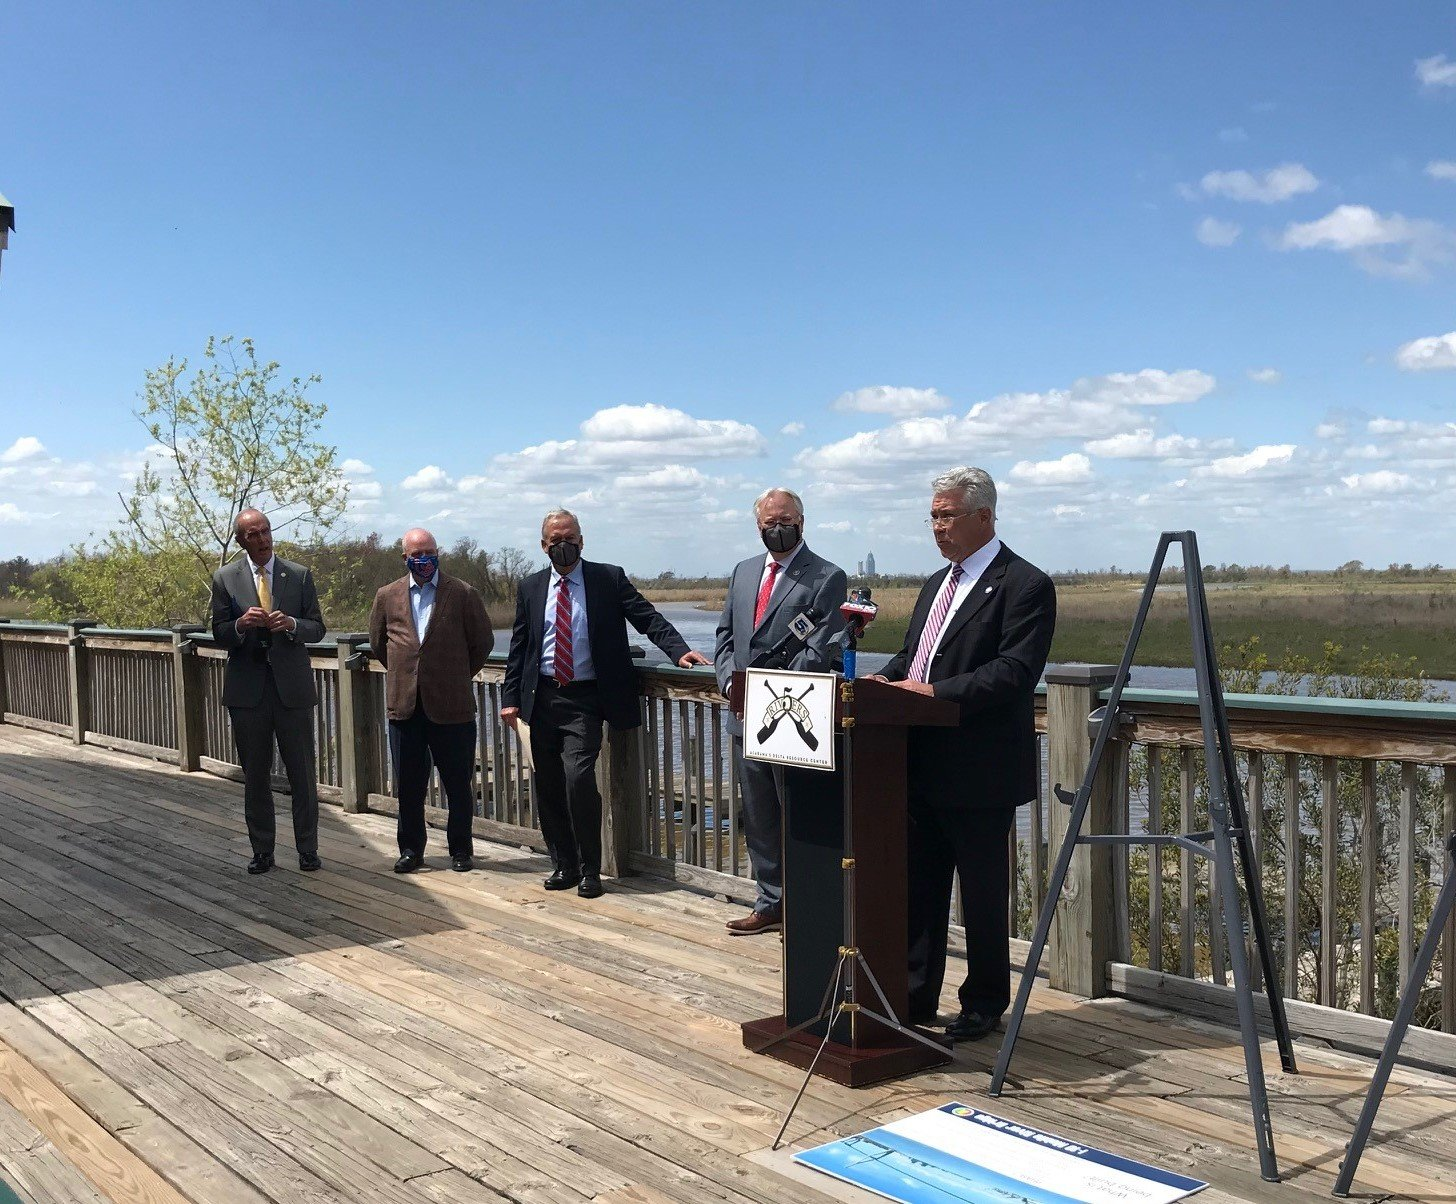 Fairhope City Council President Jack Burrell, Mobile Mayor Sandy Stimpson, U.S. Rep. Jerry Carl and other officials address the public during an announcement of a new bridge and Bayway improvements Monday.